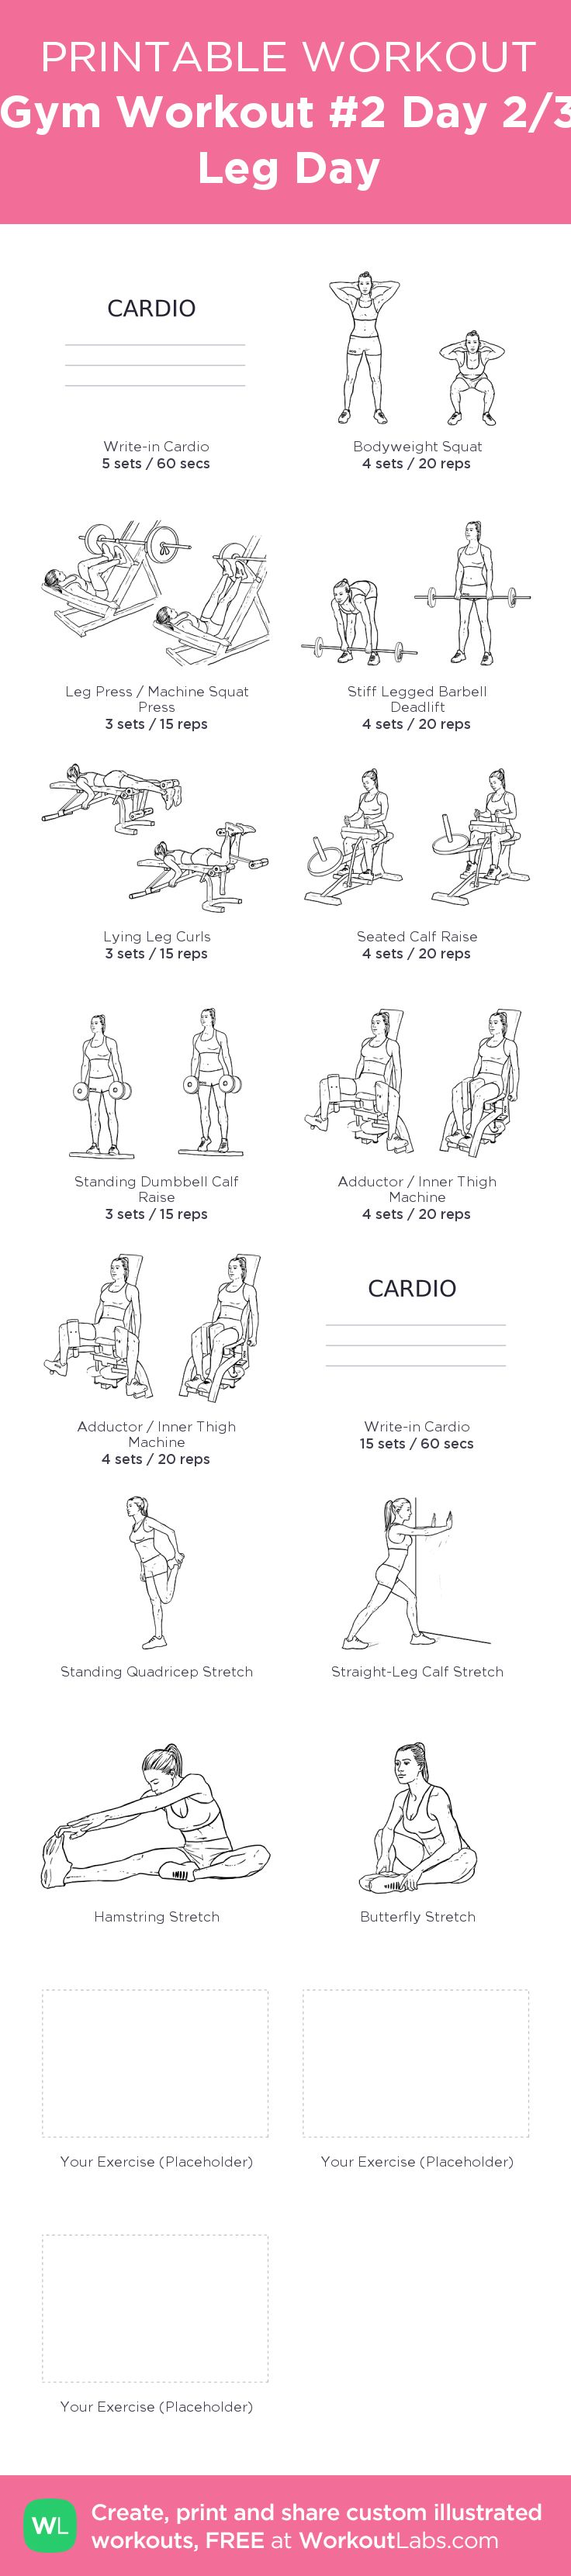 Gym Workout #2 Day 2/3 Leg Day – my custom workout created at WorkoutLabs.com • Click through to download as printable PDF! #customworkout